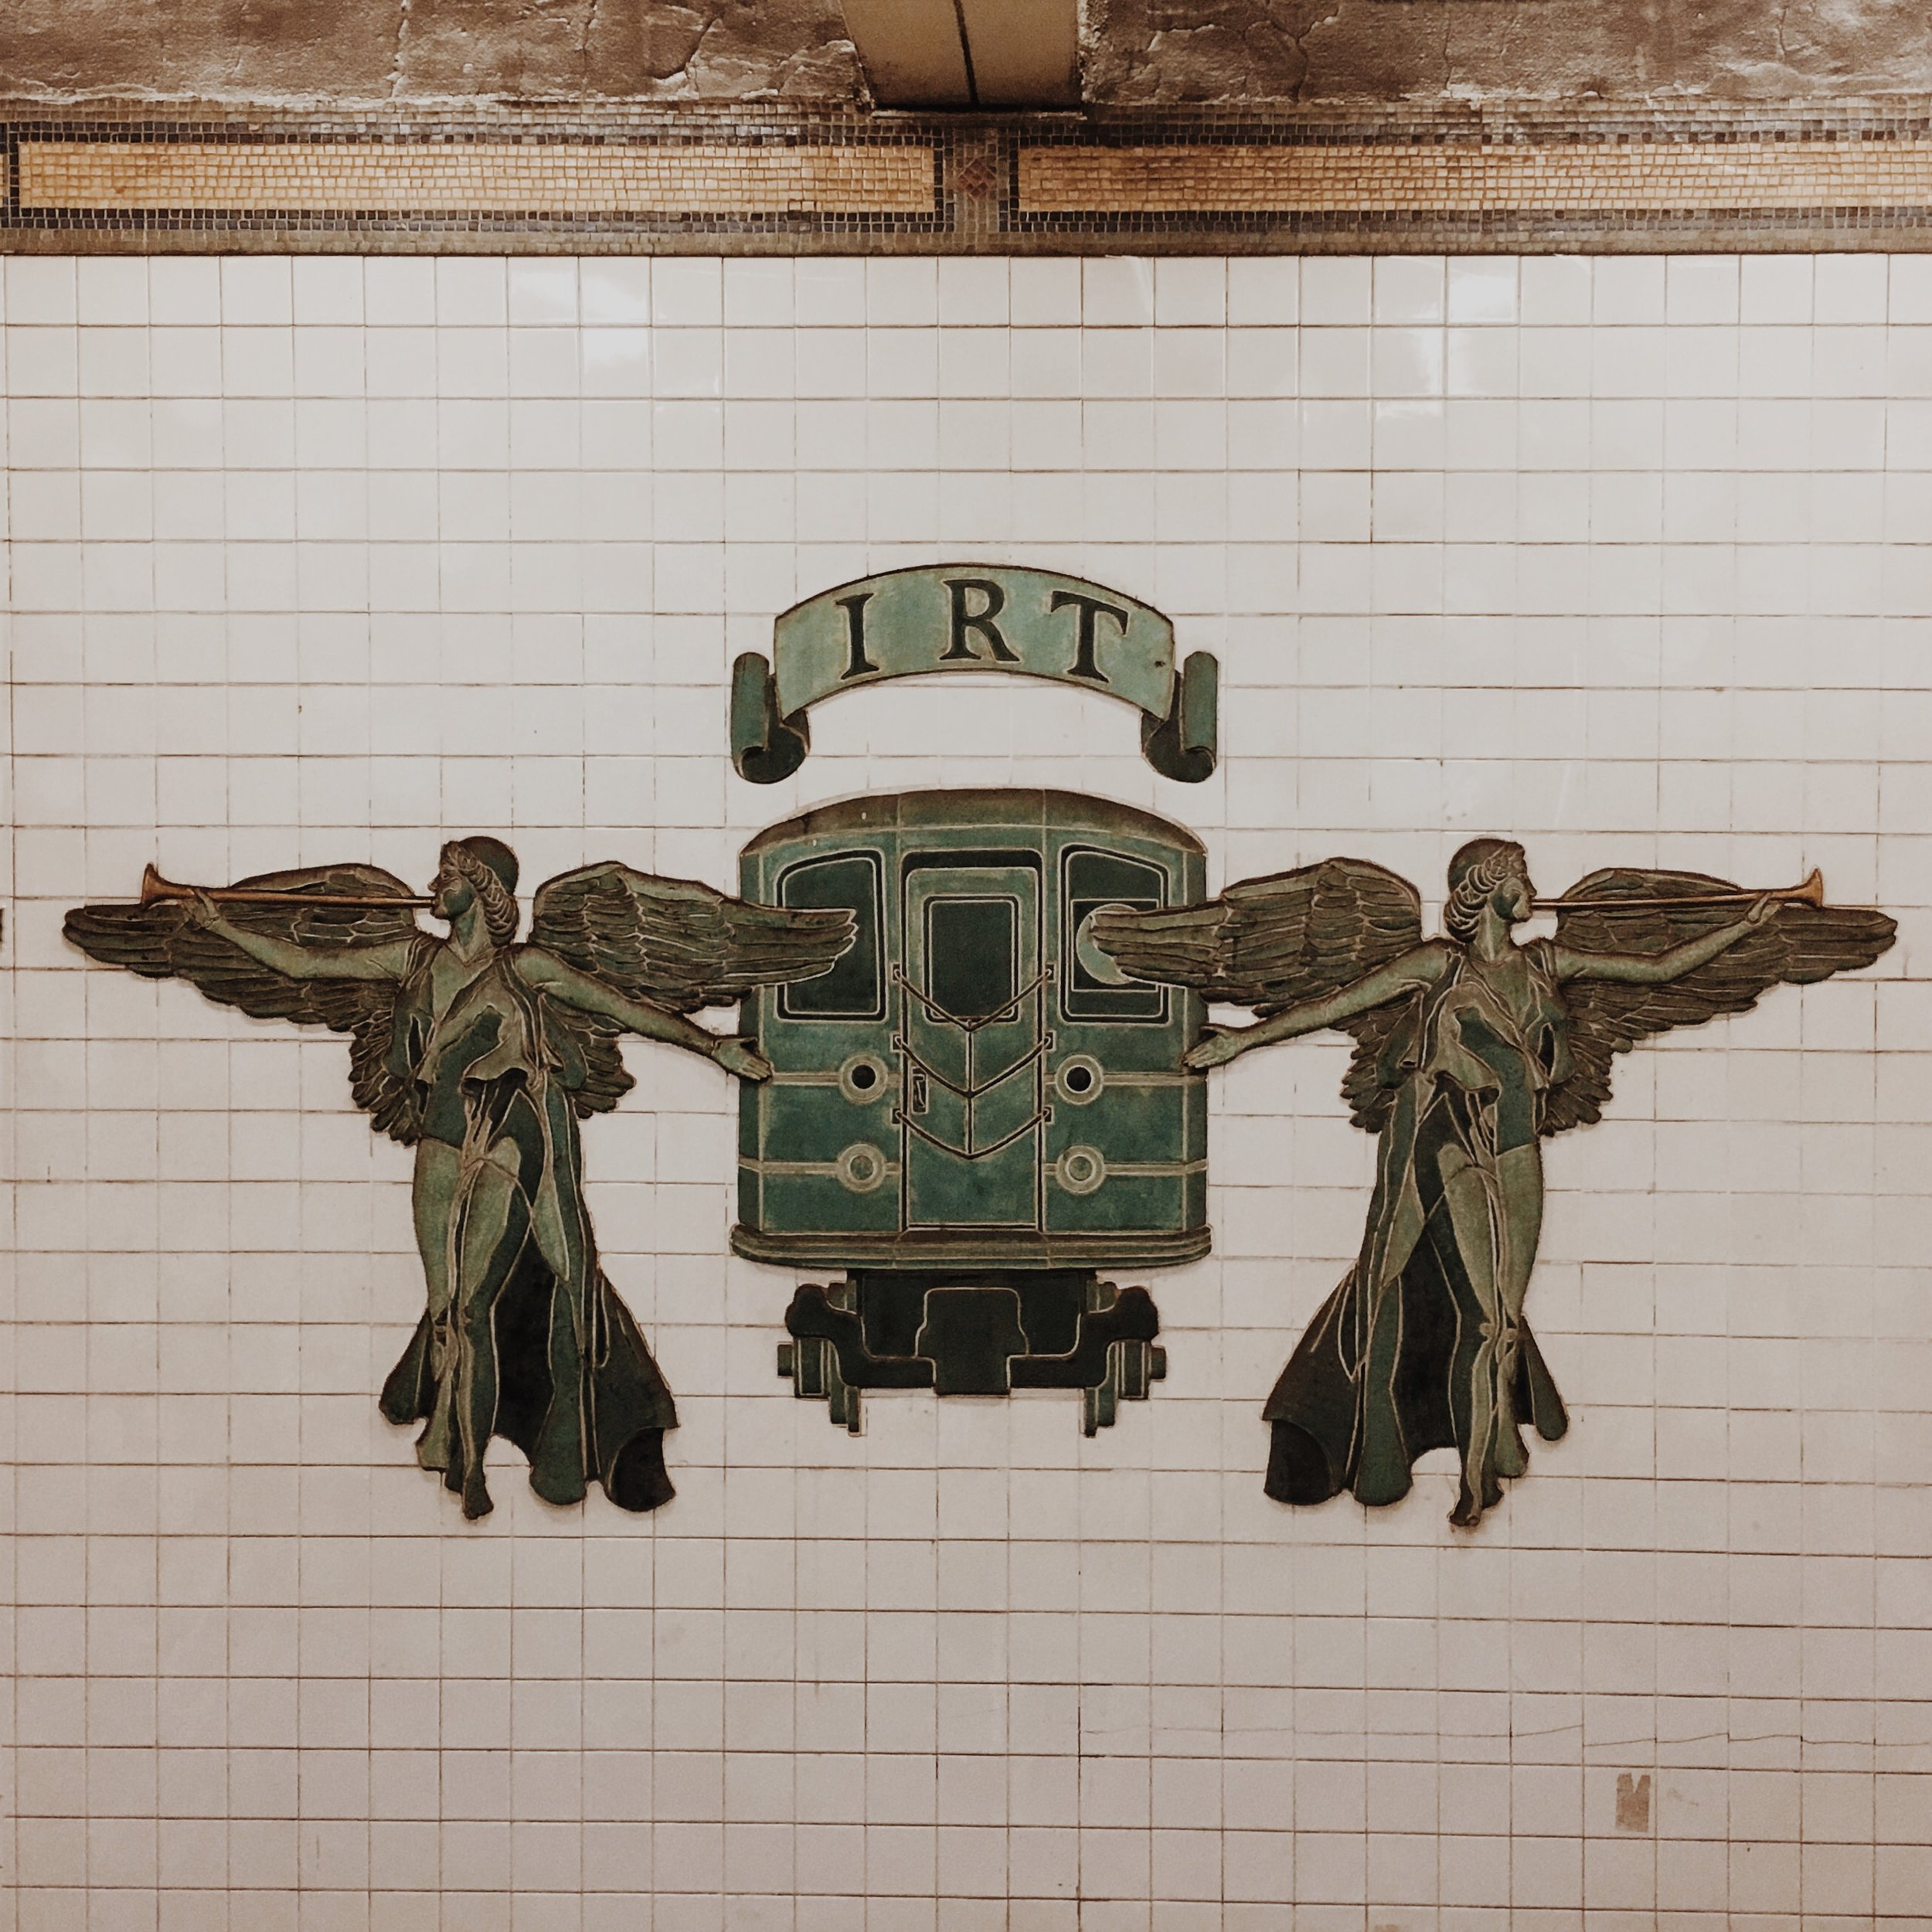 7th Avenue subway